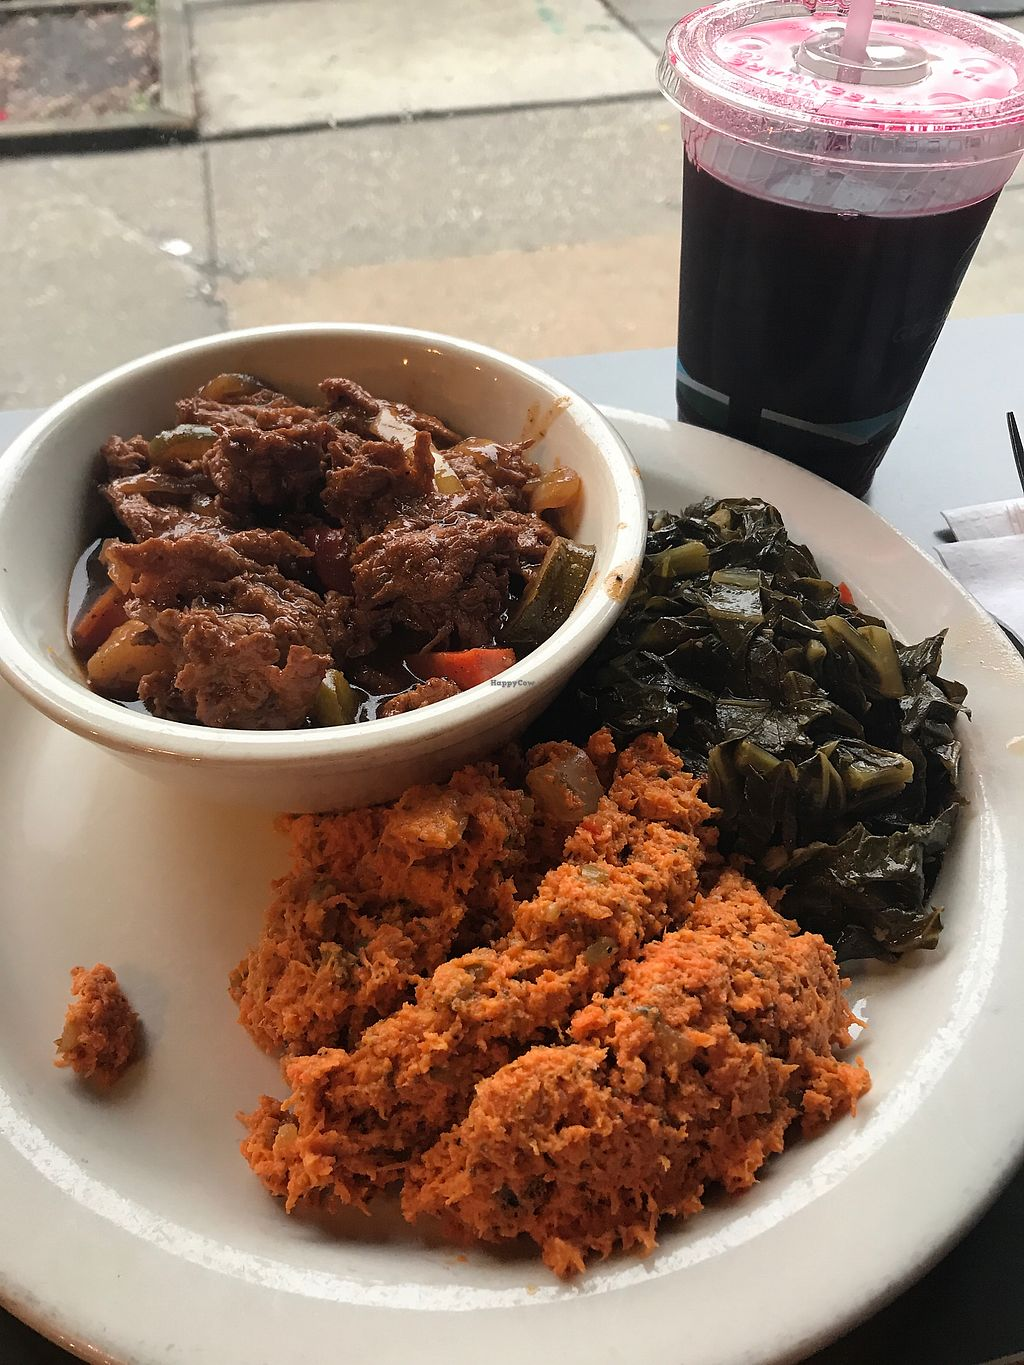 """Photo of The Land of Kush  by <a href=""""/members/profile/Birgit"""">Birgit</a> <br/>BBQ ribs, collard greens, carrot tuna salad and sorrel drink <br/> February 25, 2018  - <a href='/contact/abuse/image/25073/363820'>Report</a>"""